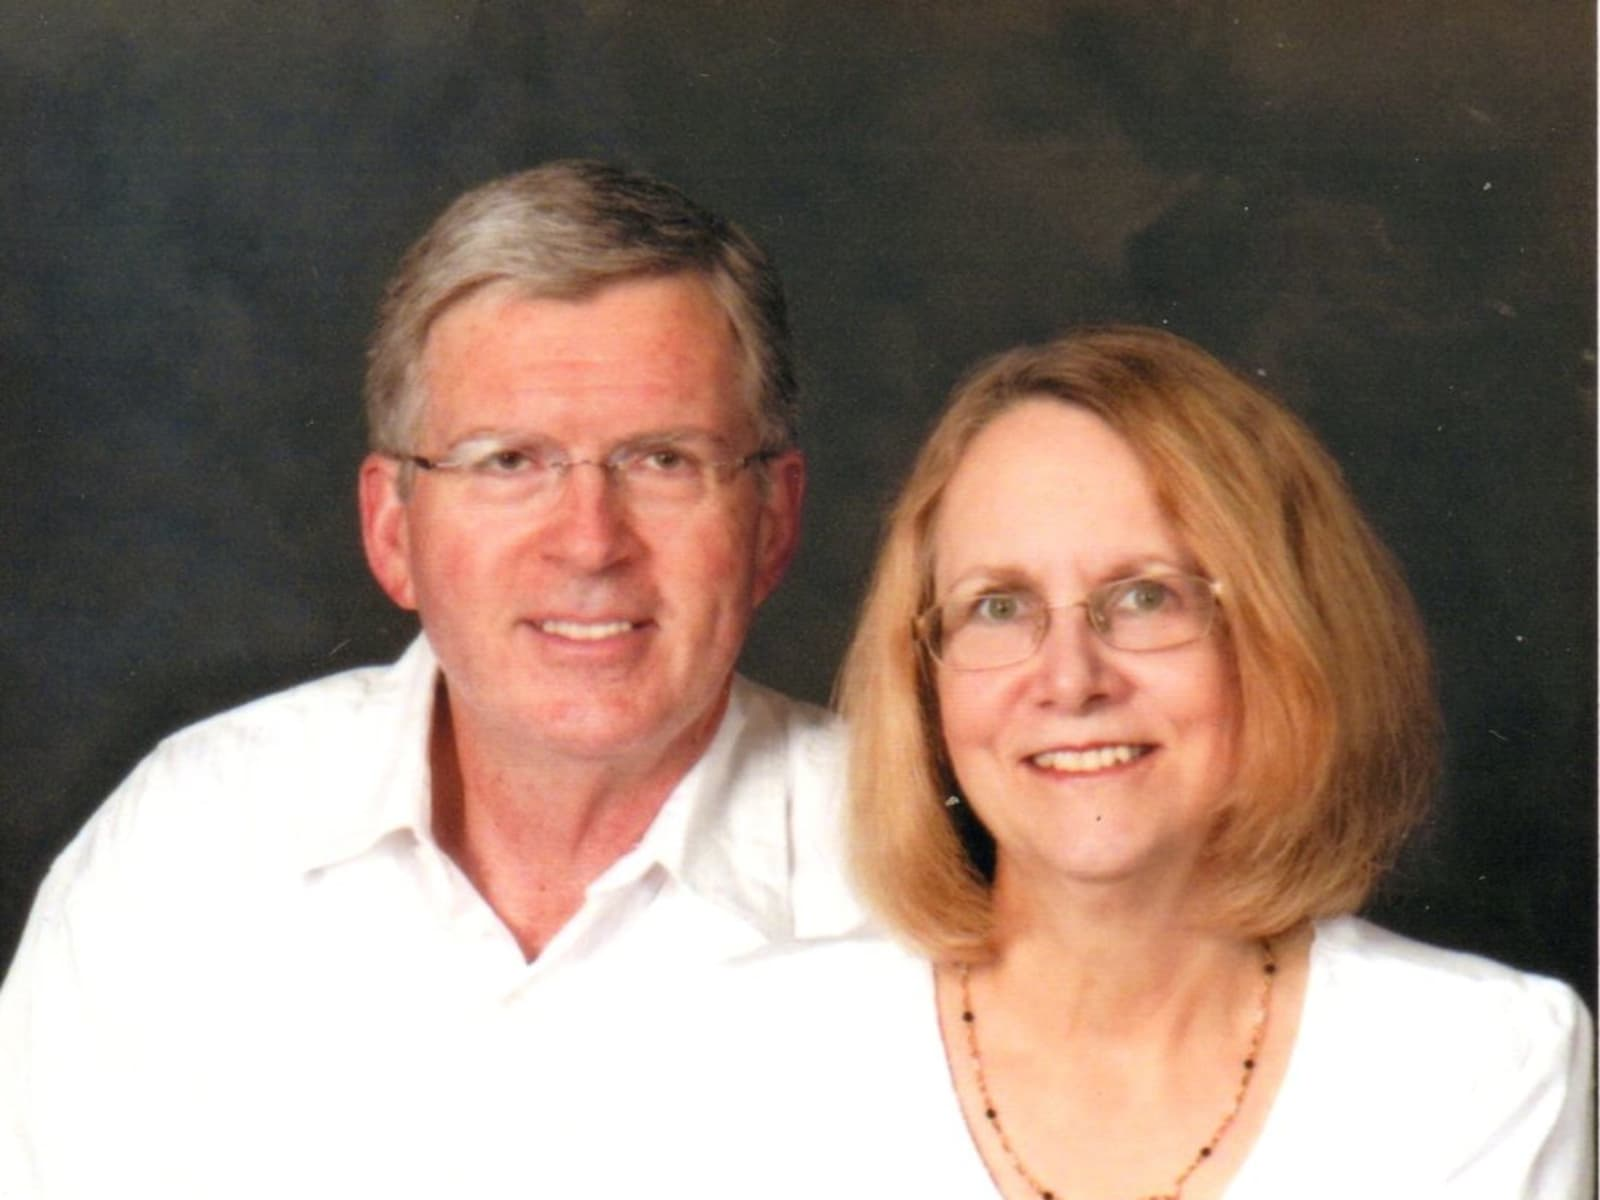 Alan & Sheila from Burleson, Texas, United States